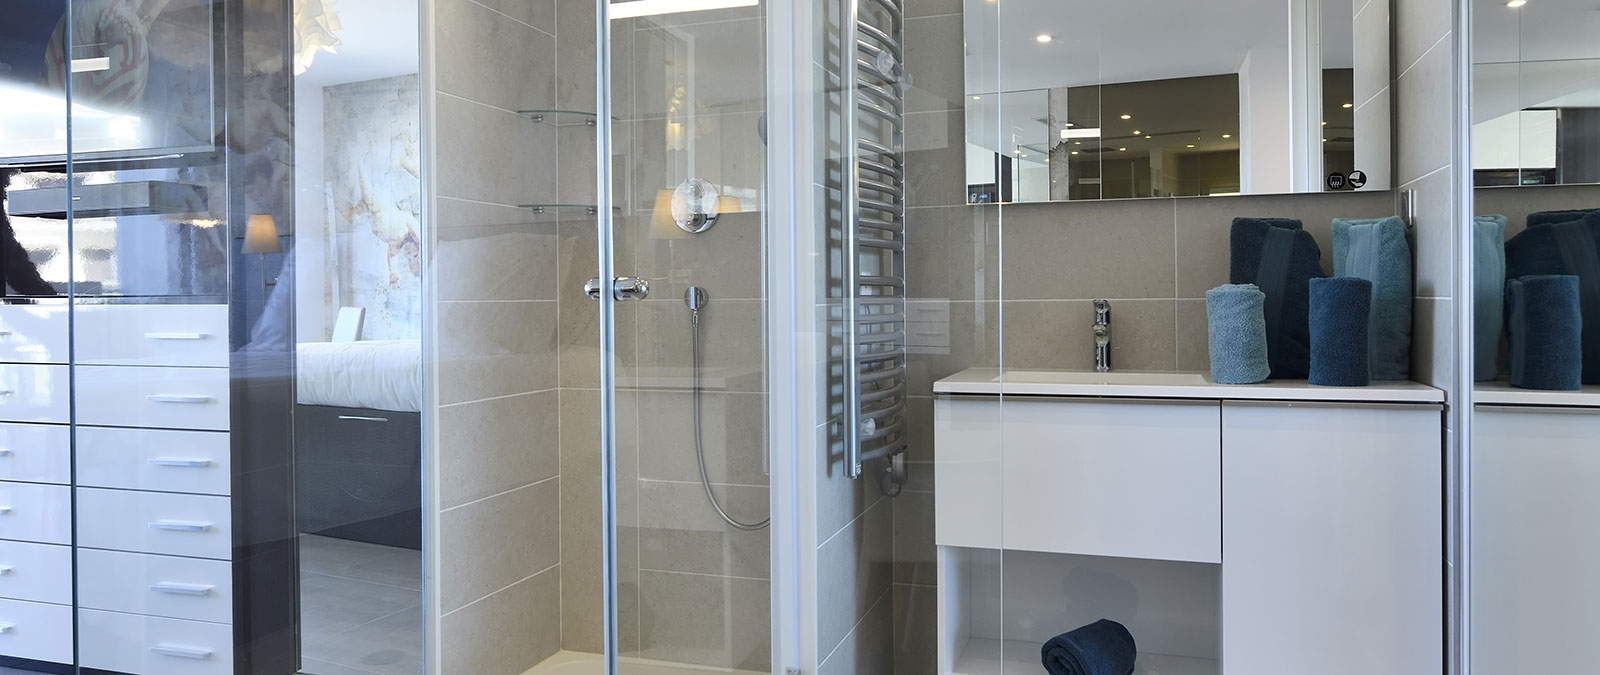 Bathroom area with Italian-style shower premium junior suite on the 1st floor